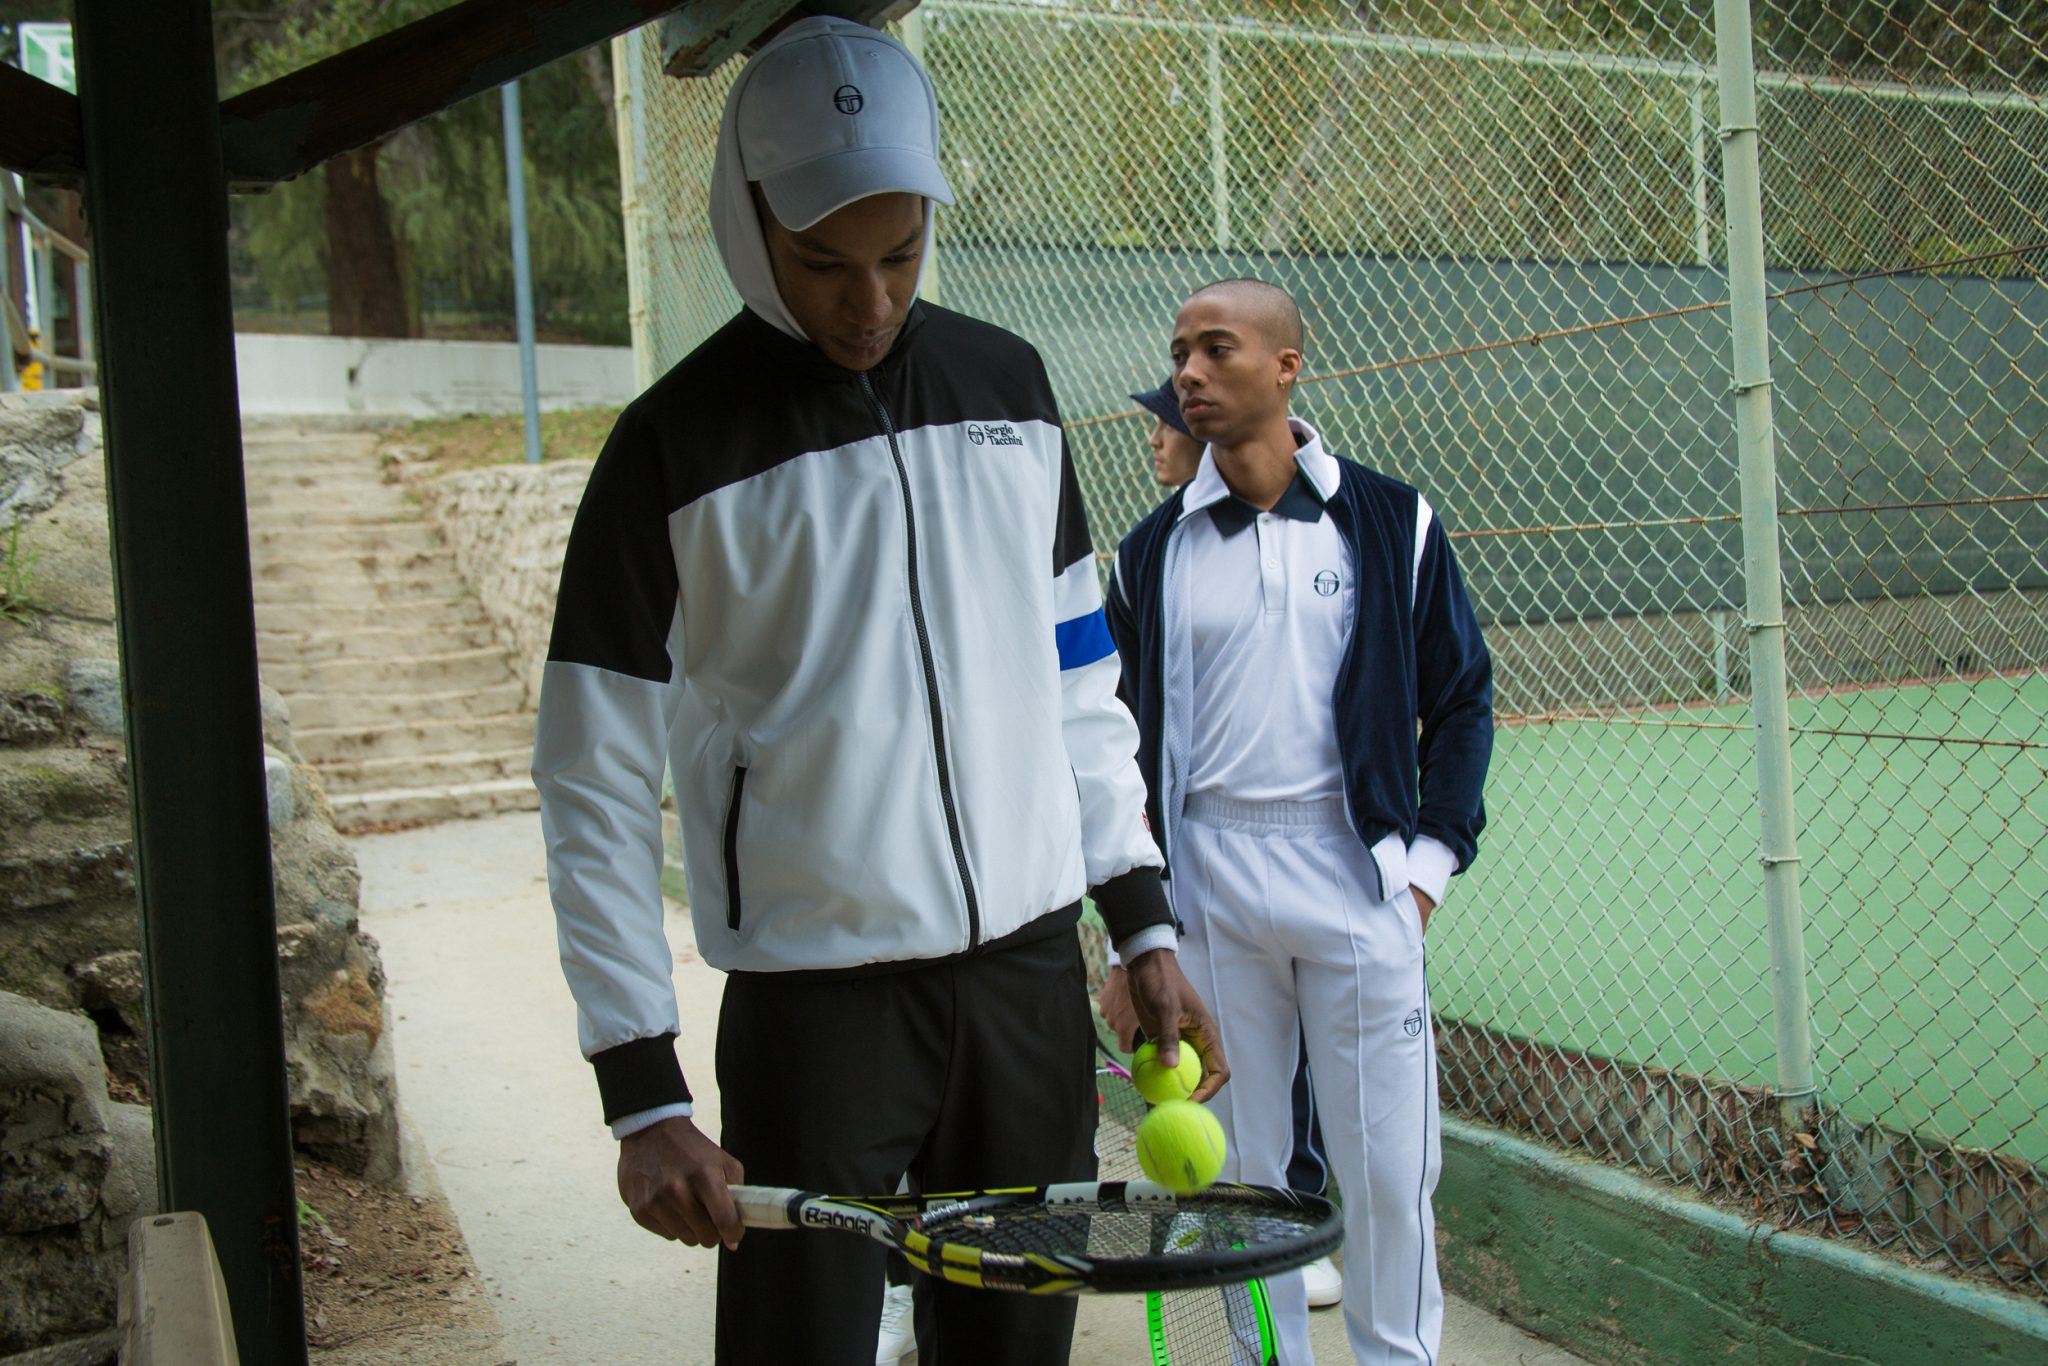 Sergio tacchini STLA collection 13